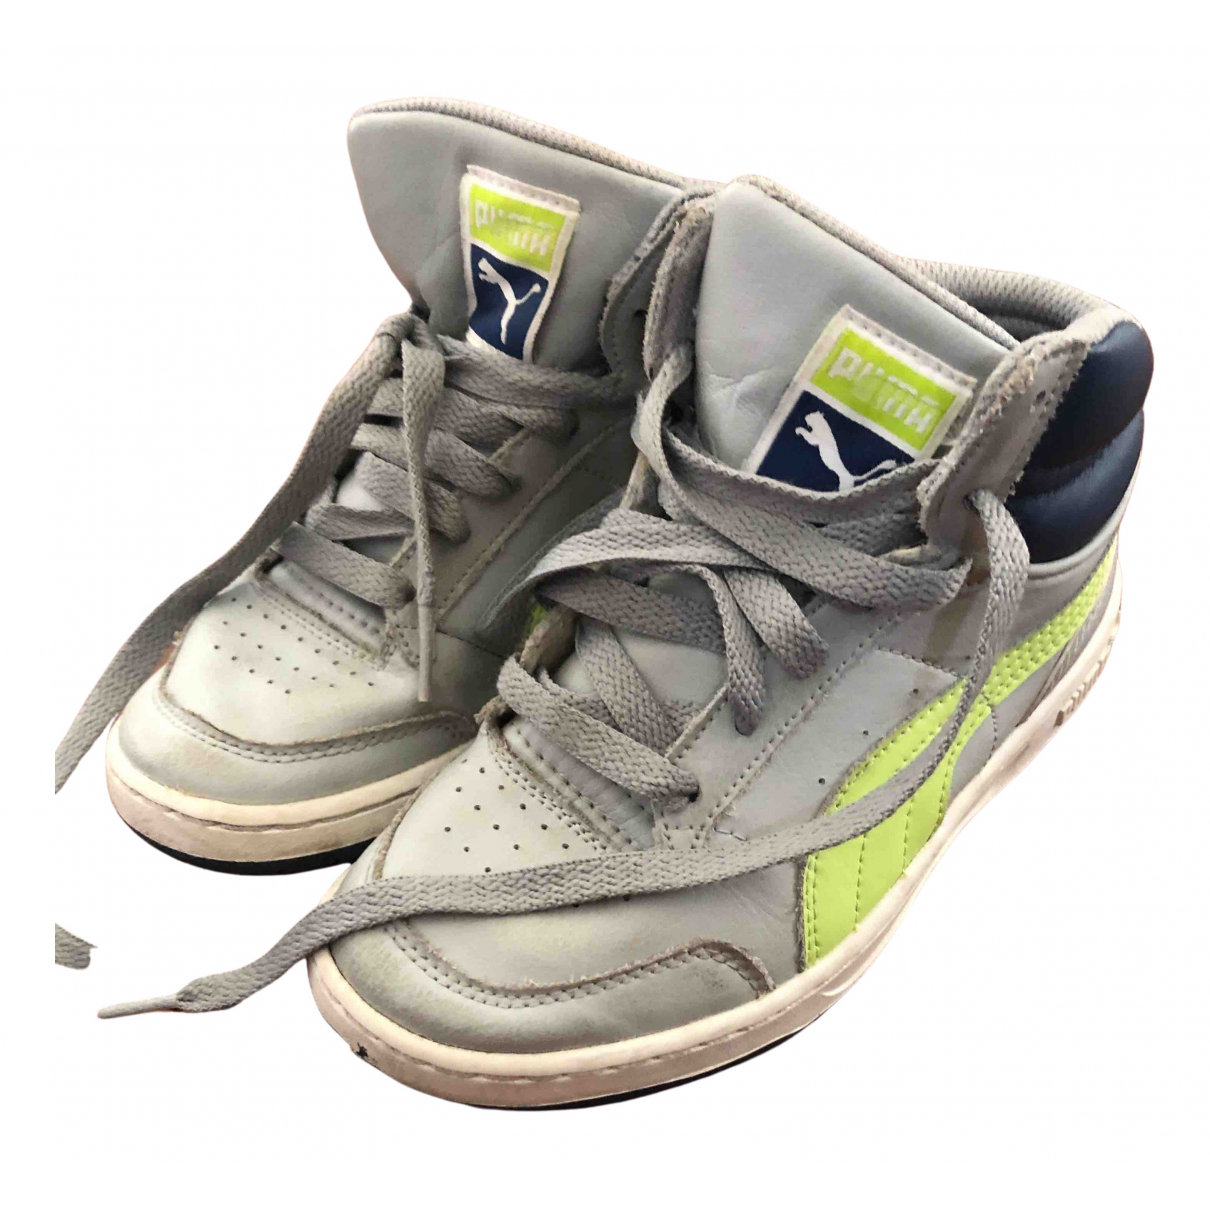 Puma N Grey Leather Trainers for Kids 13 US